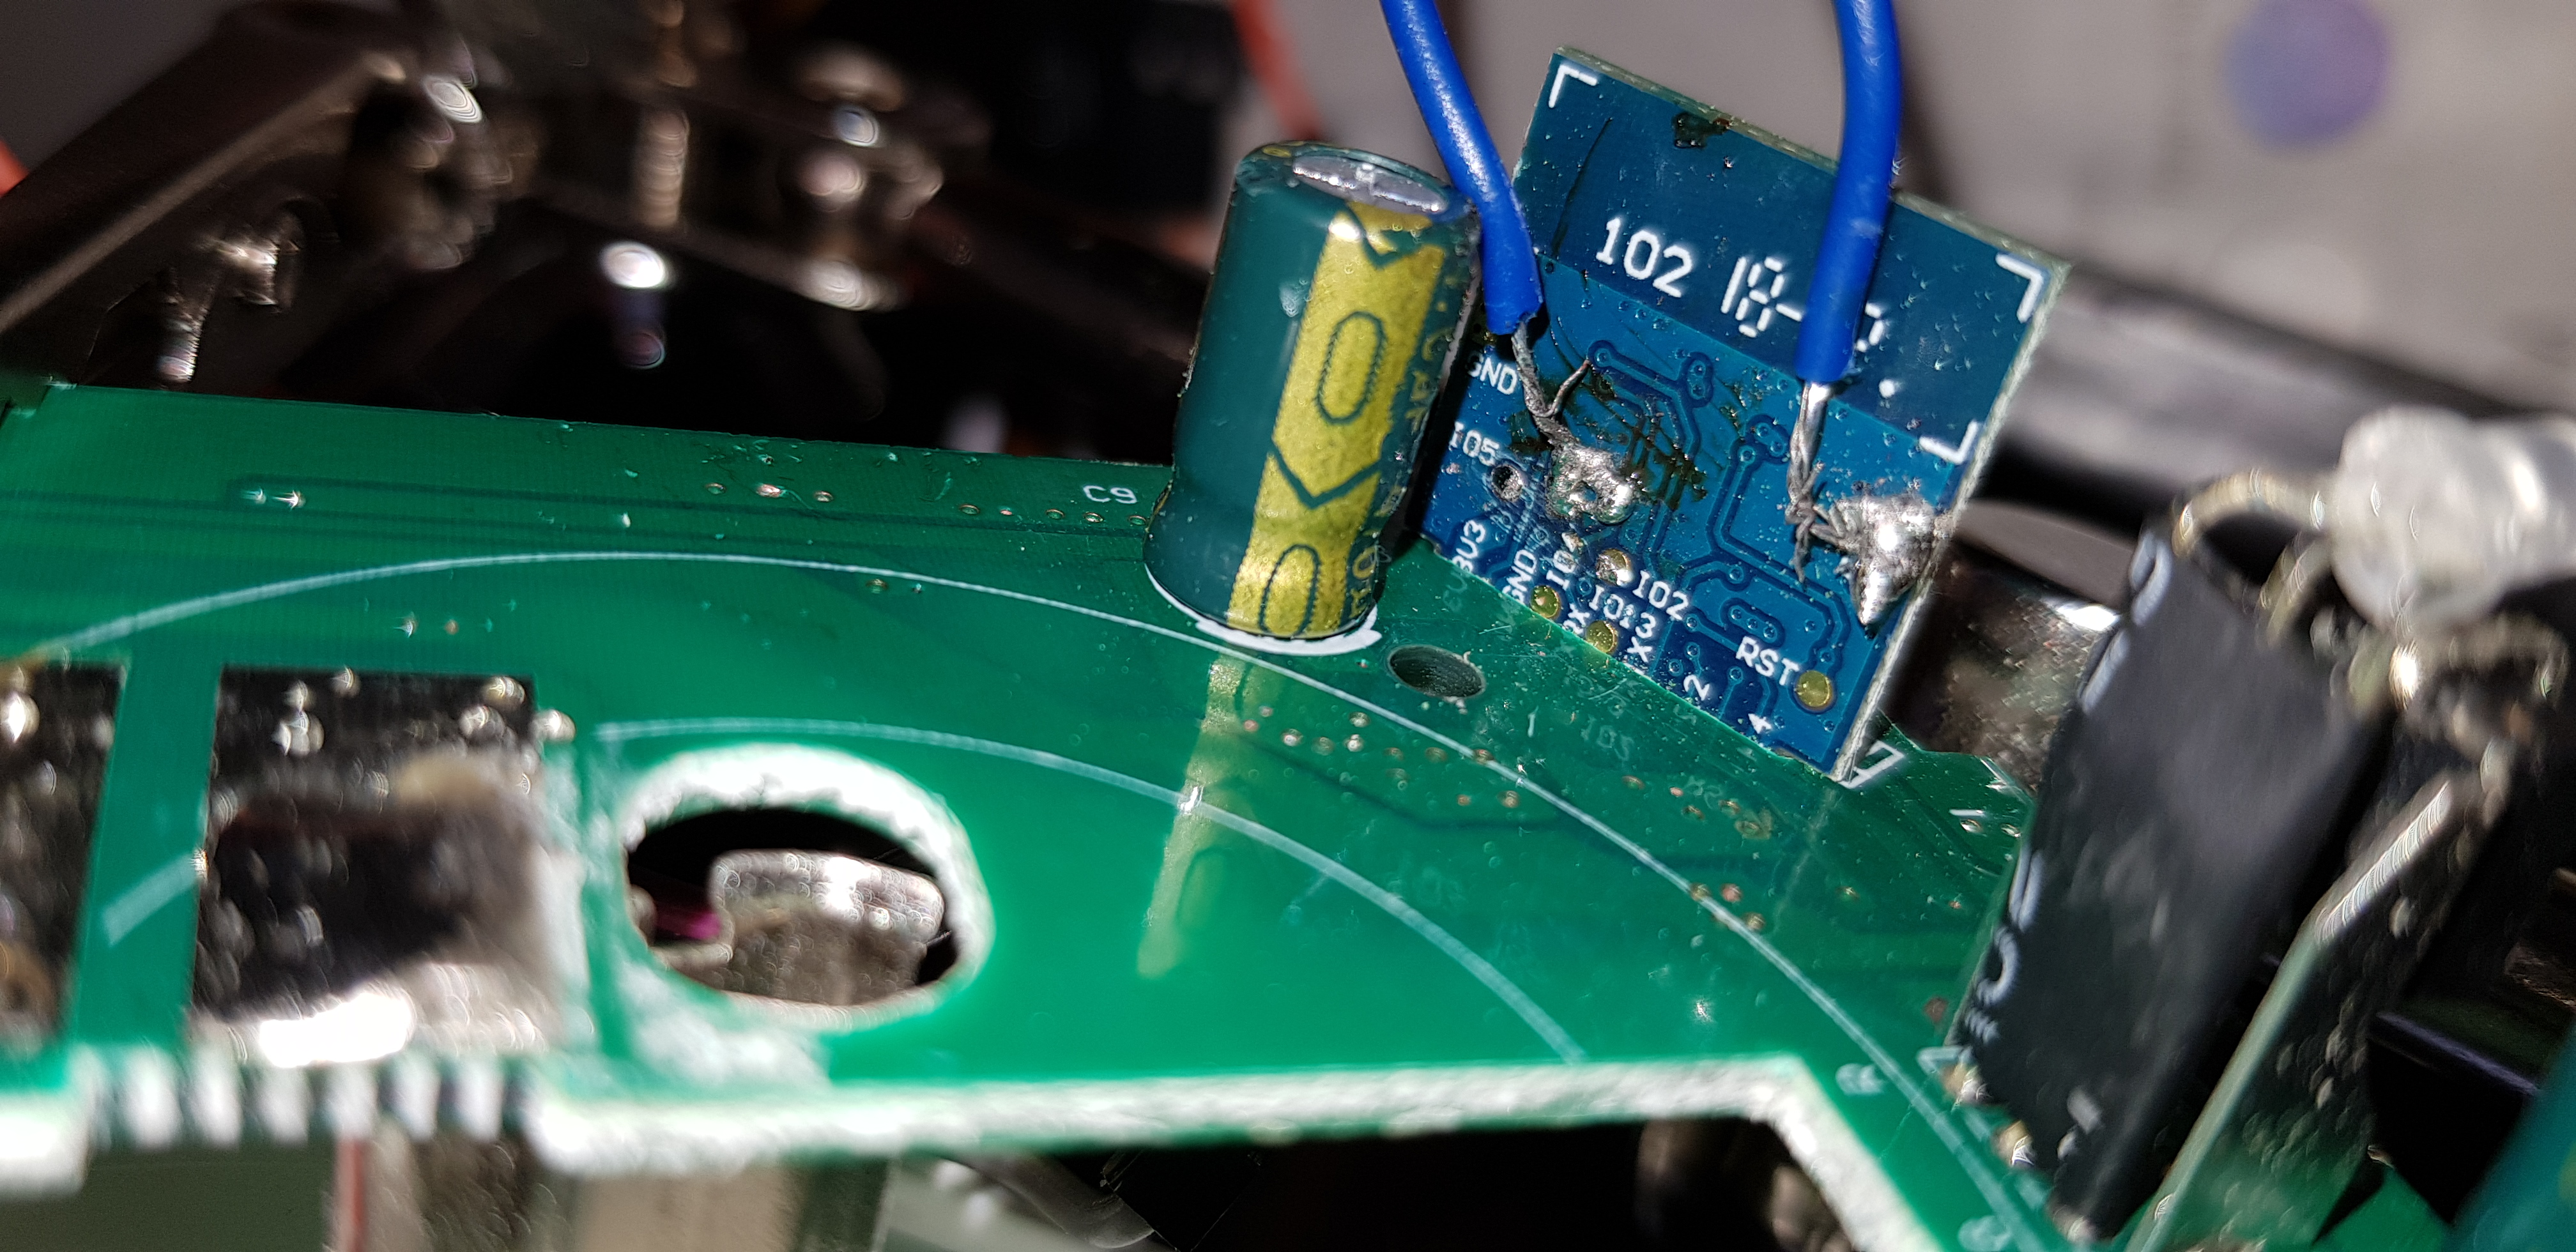 tuya convert device did not appear with the intermediate firmware